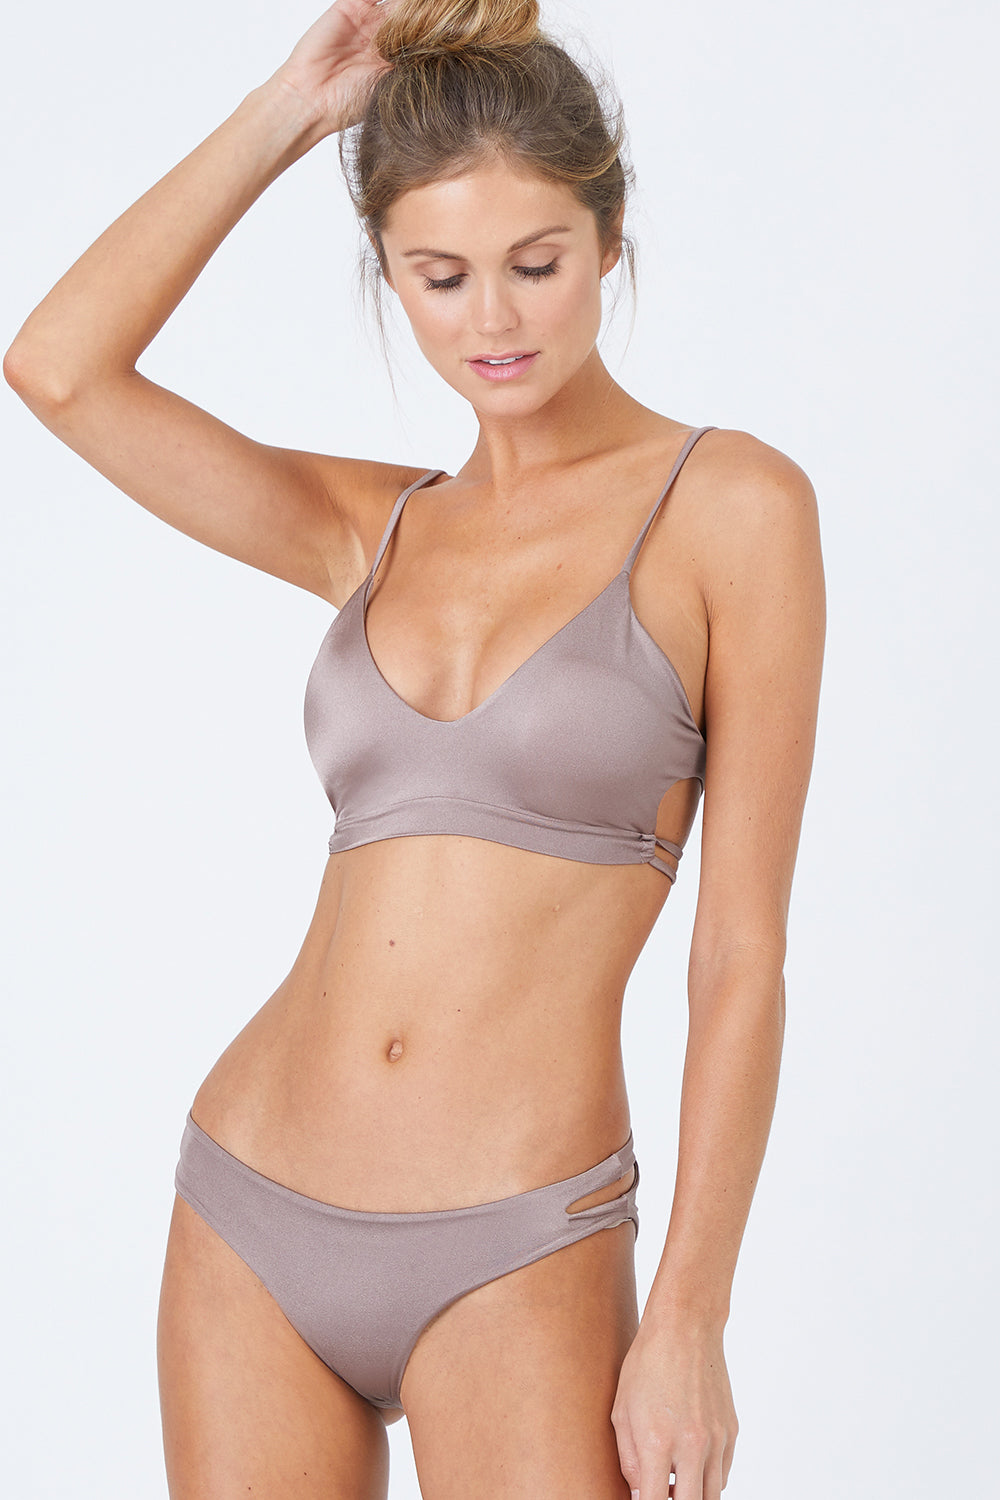 Pacific Cut Out Bralette Bikini Top - Sparkly Taupe